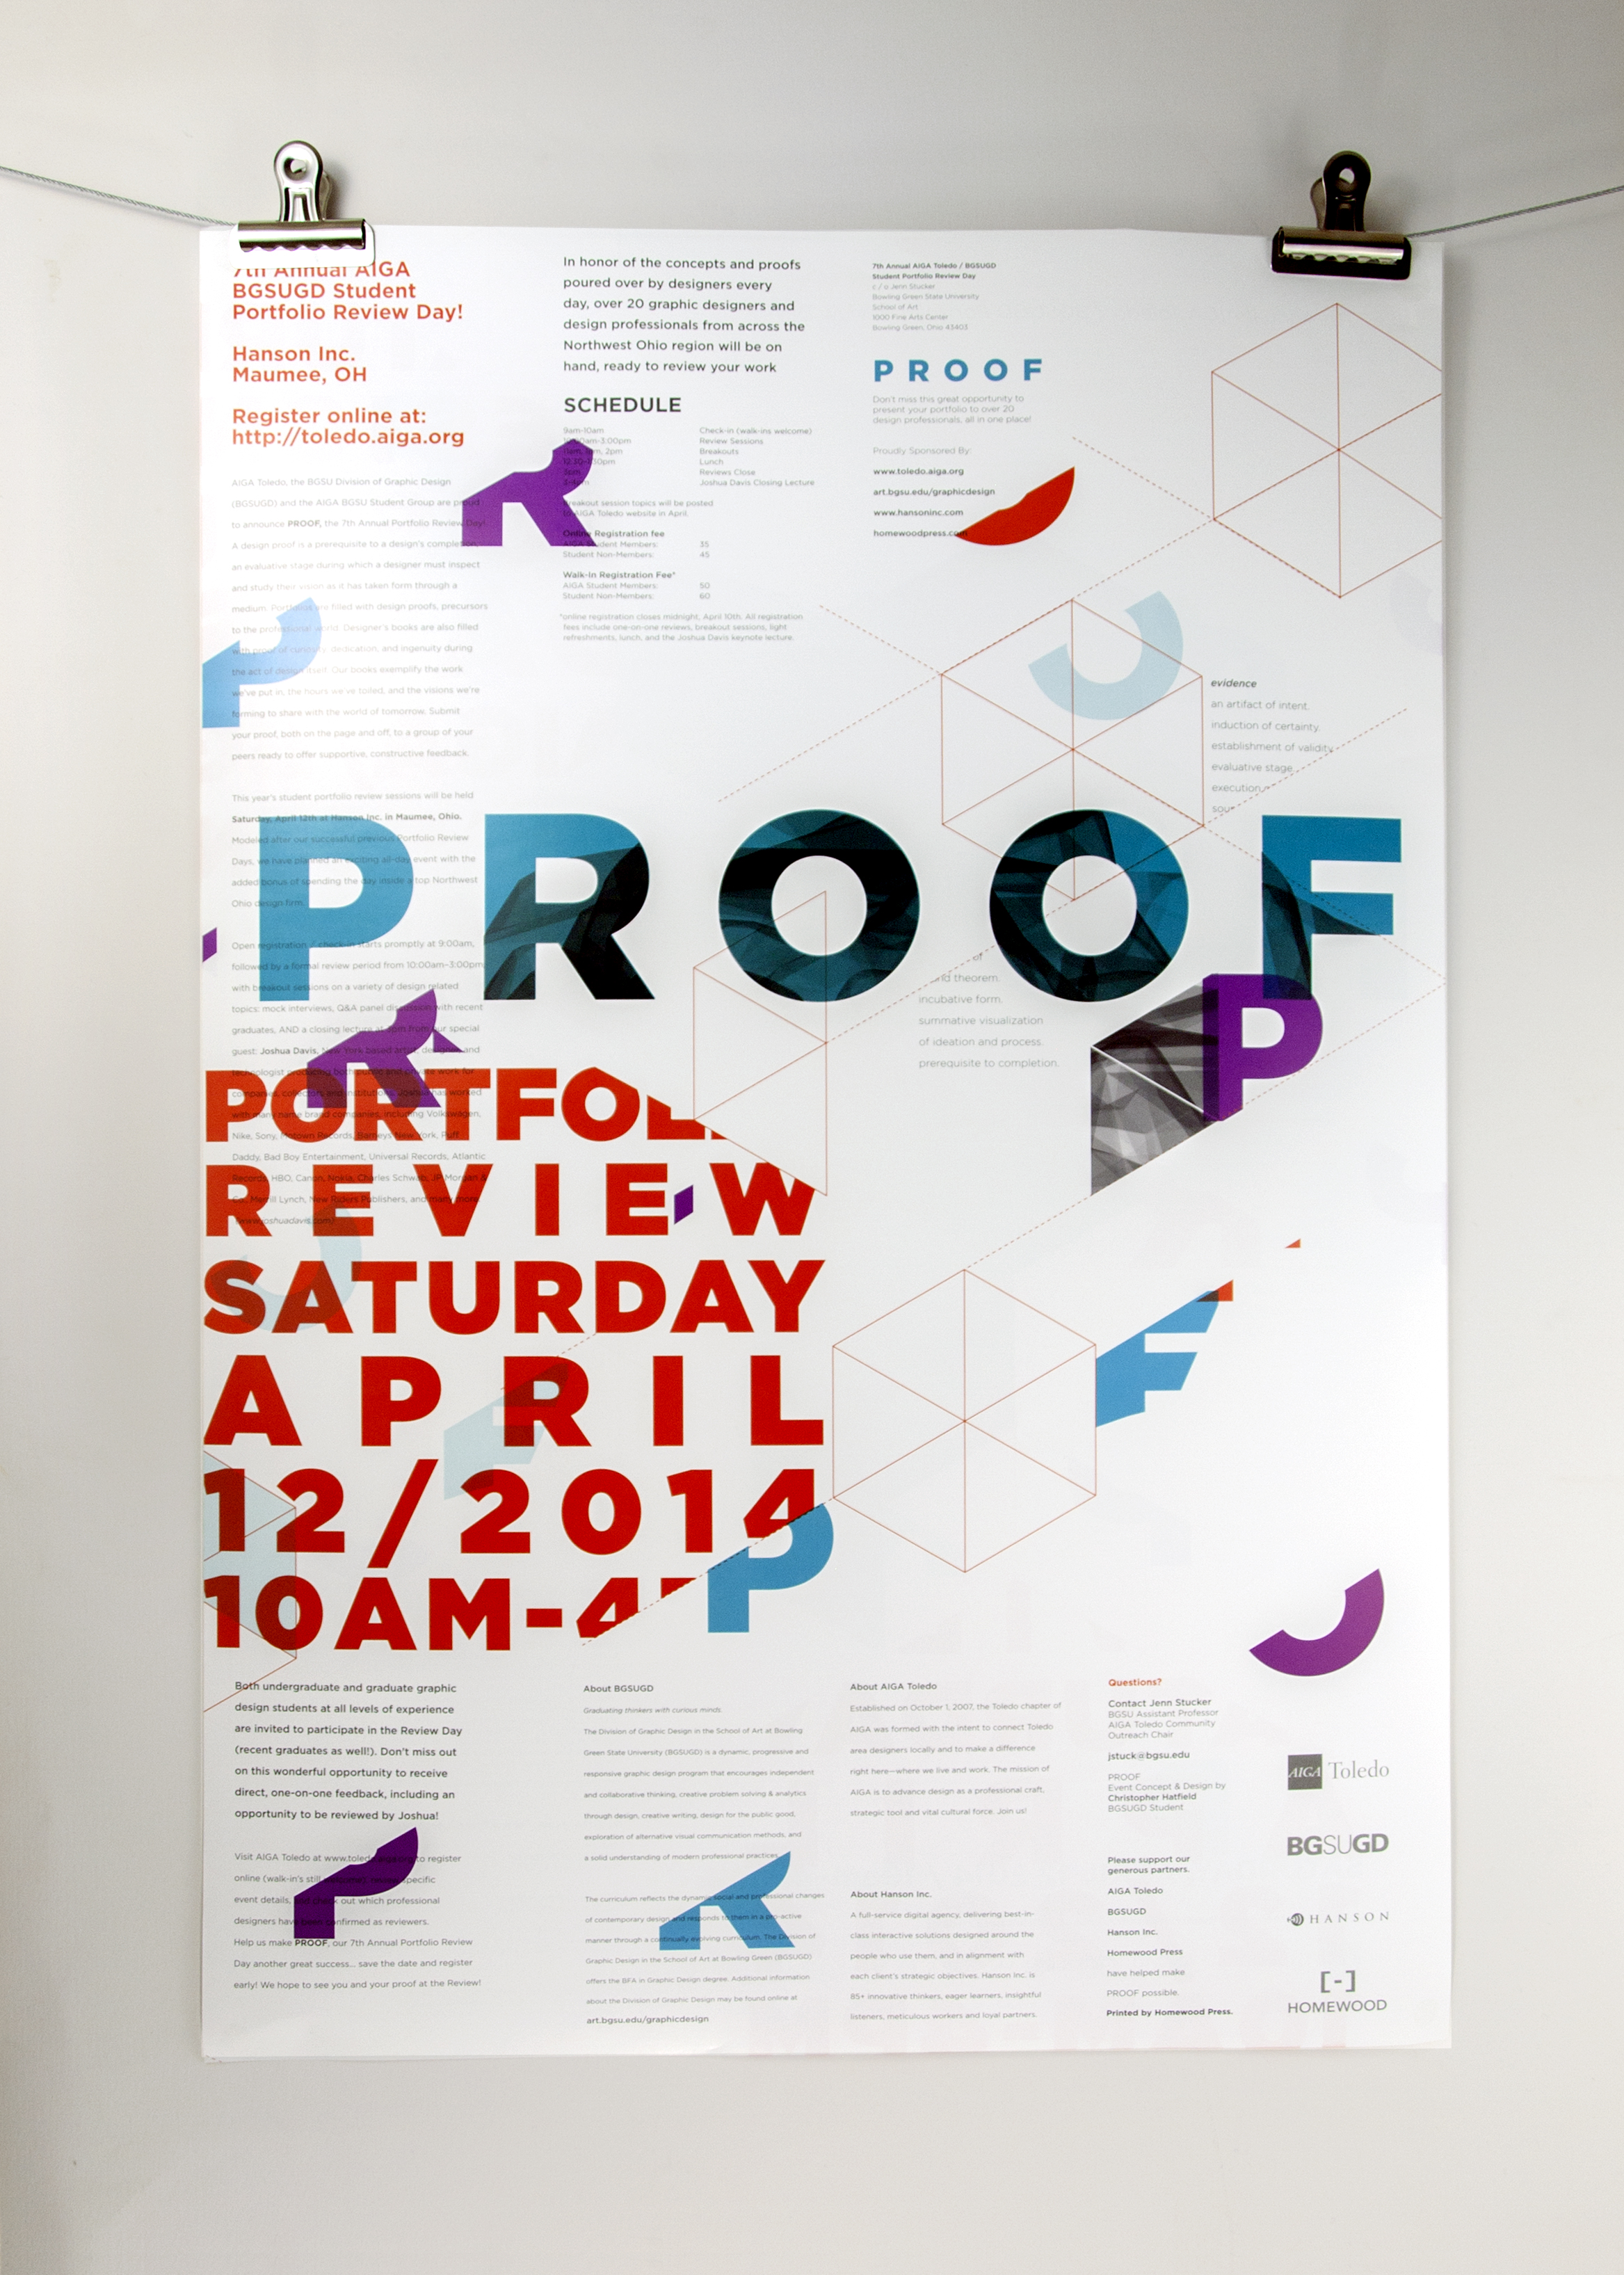 PROOF: Portfolio Review Day